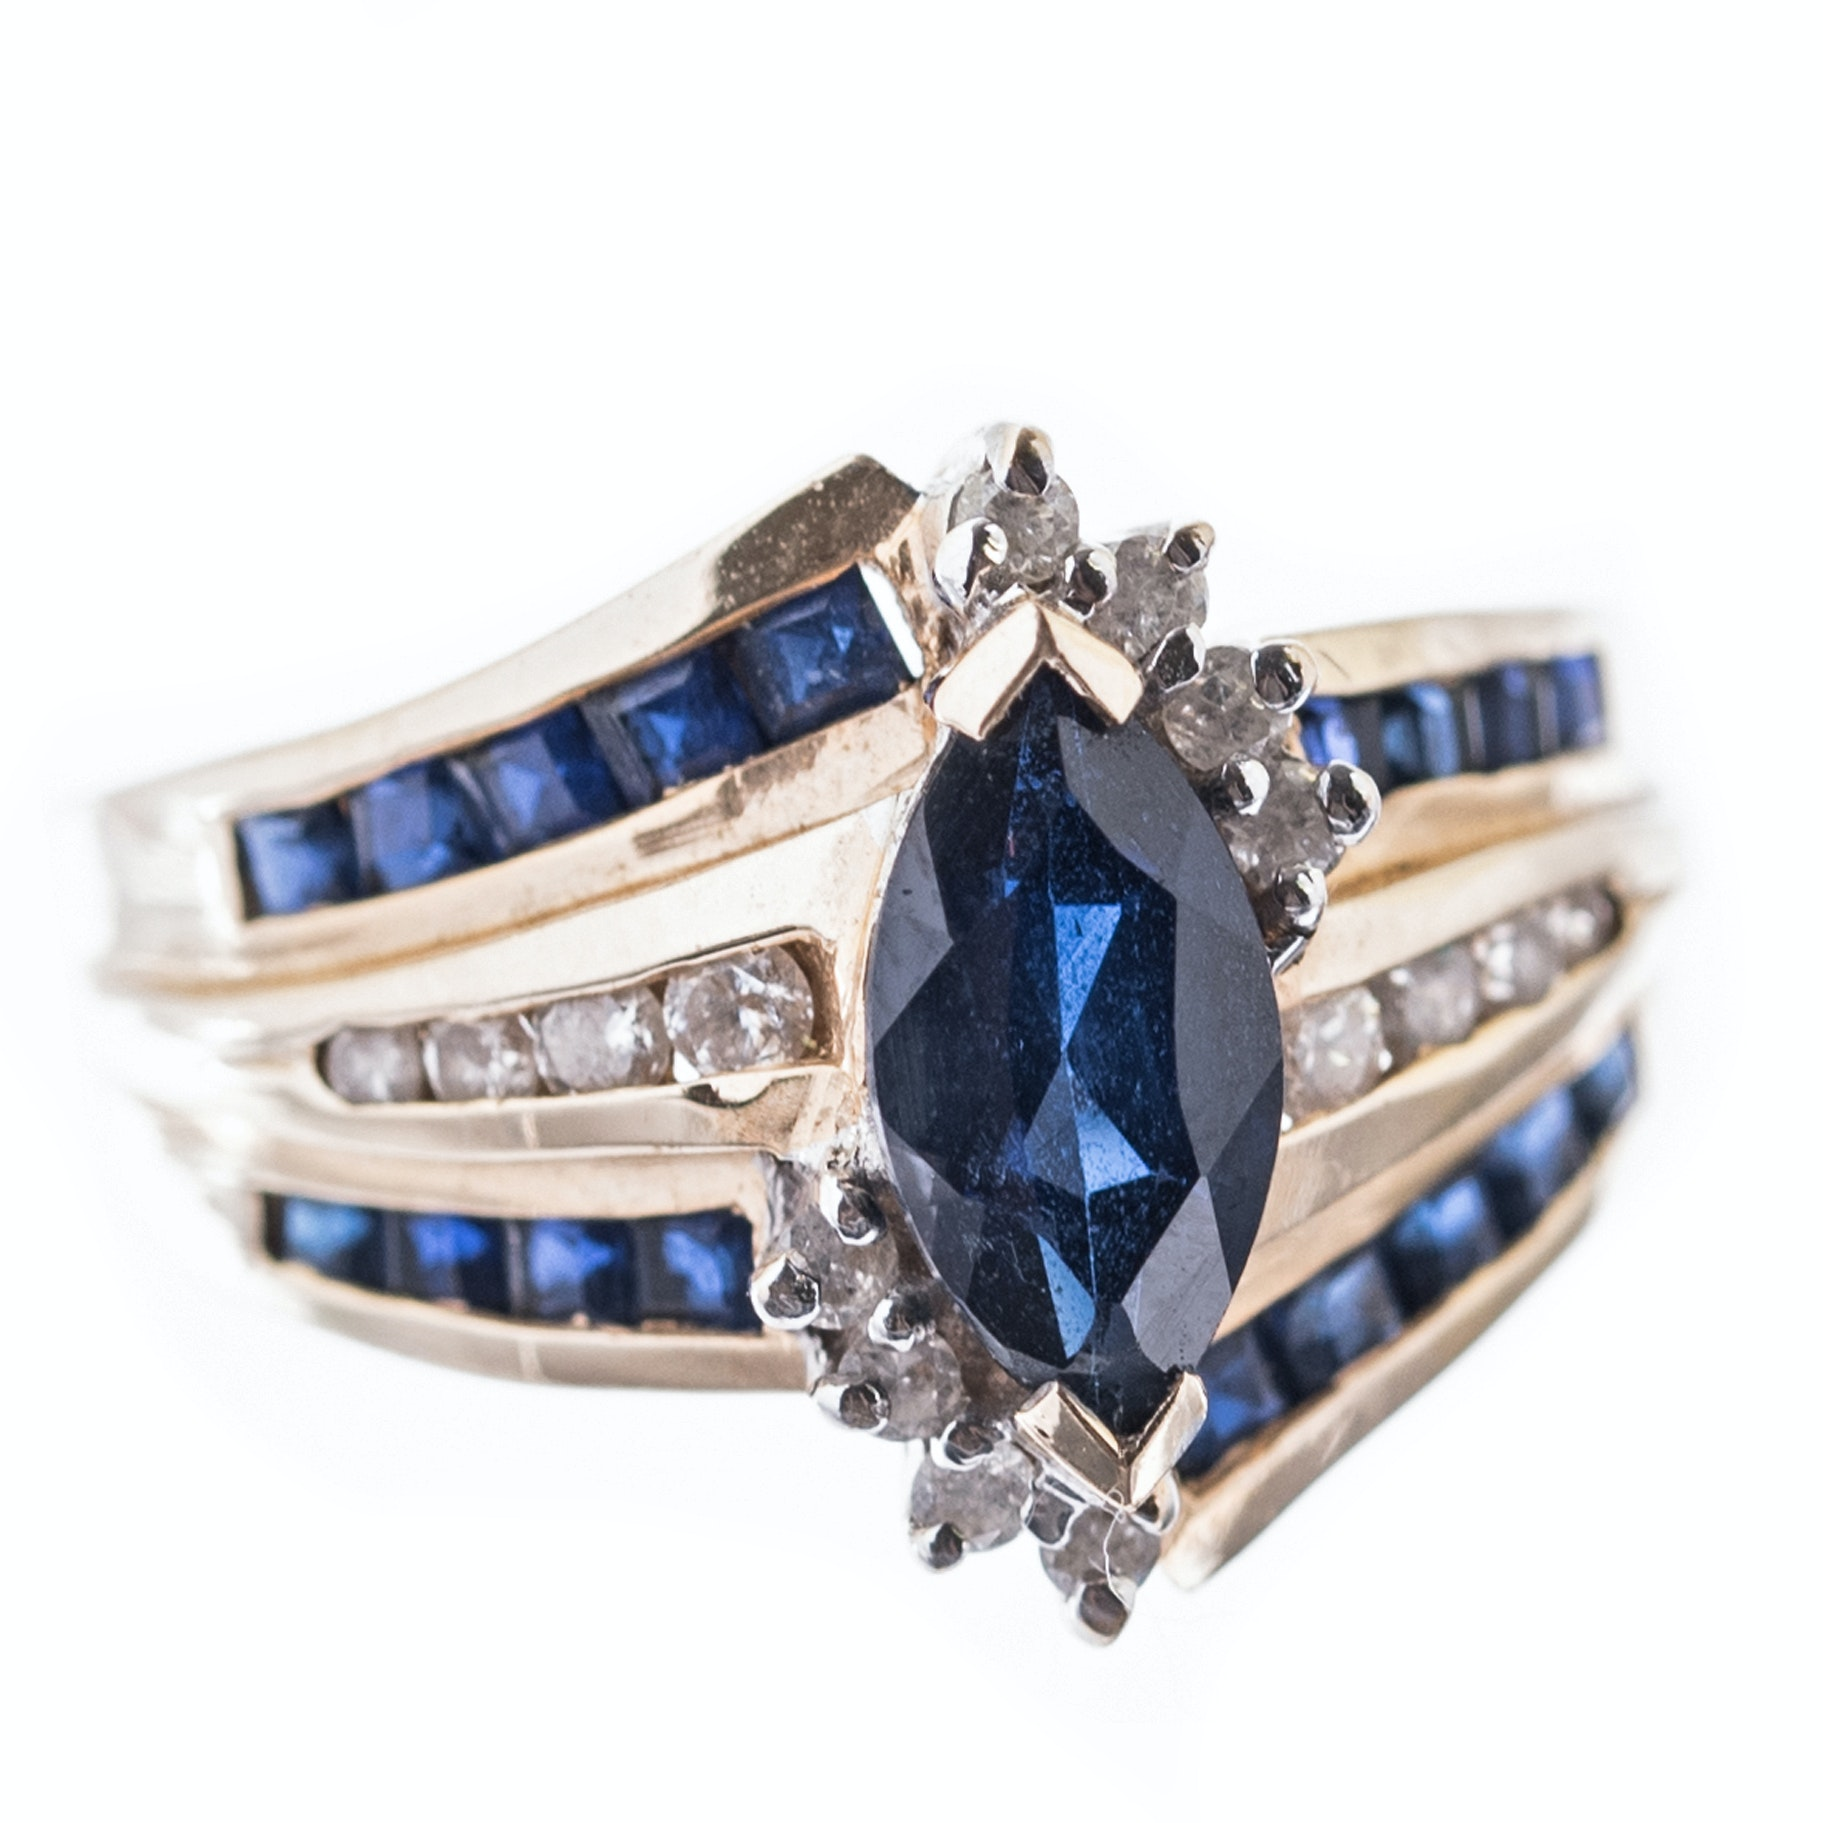 14K Yellow Gold, 2.33 CTW Sapphire, and Diamond Ring